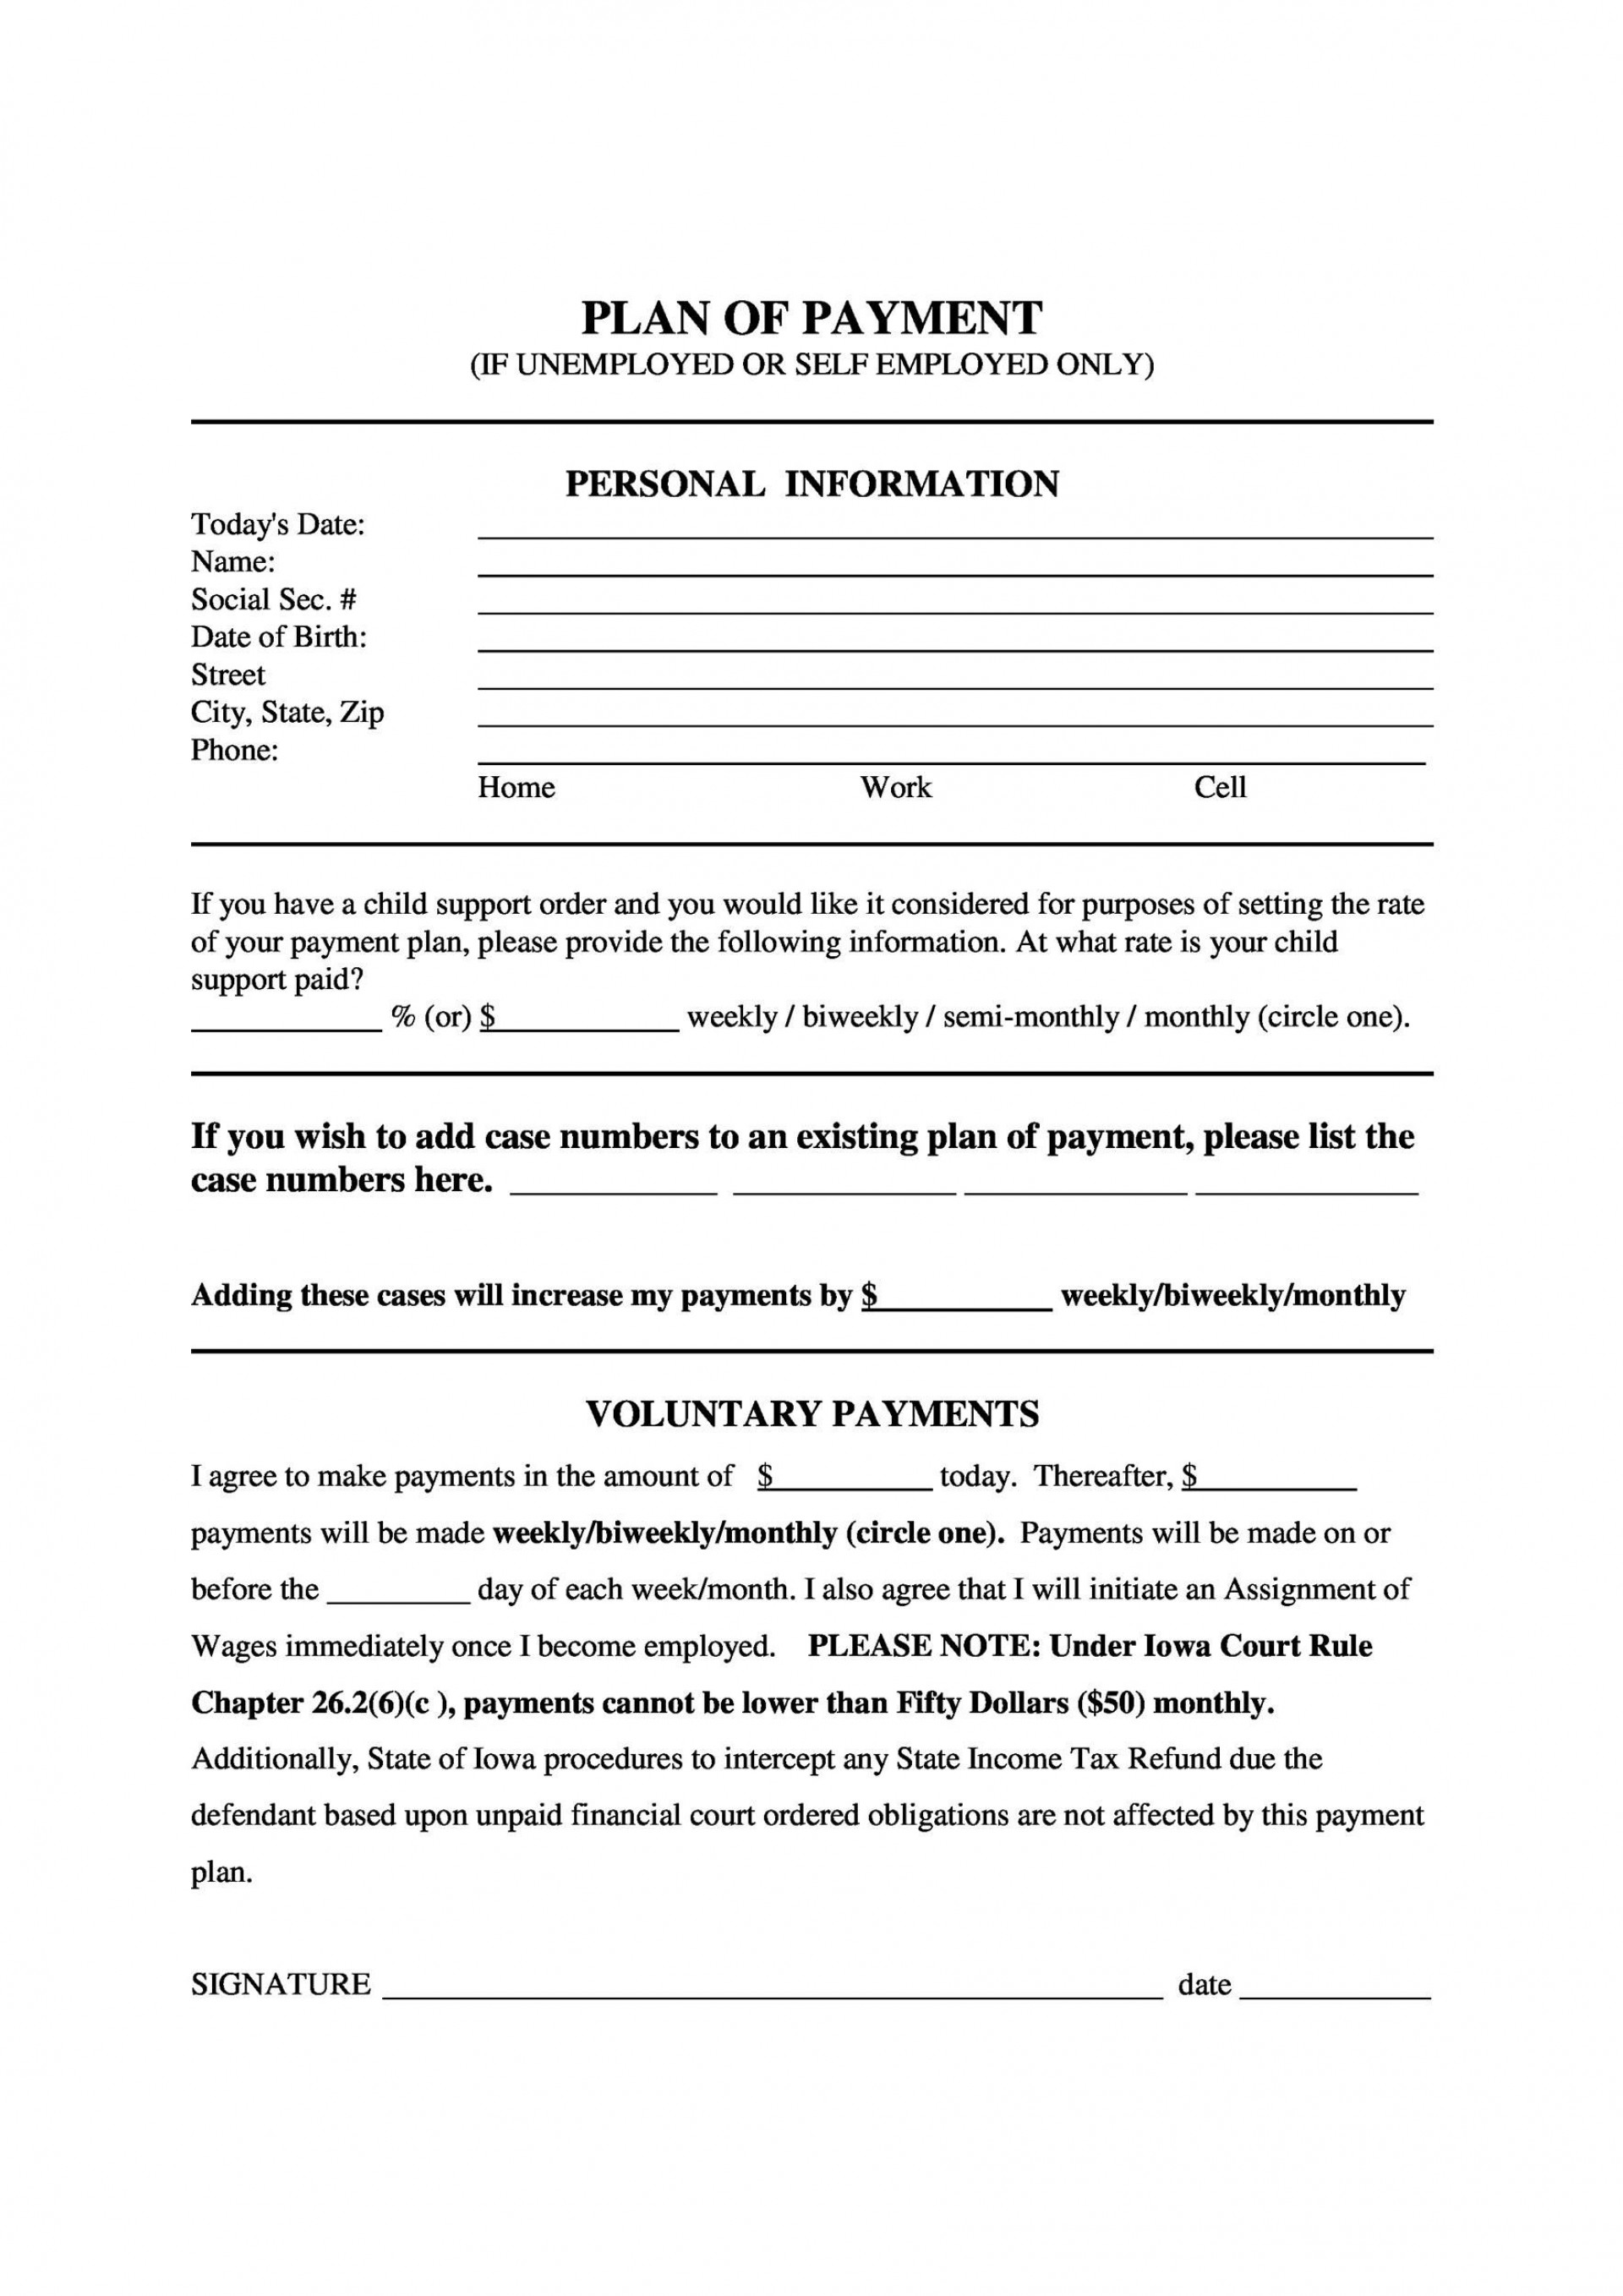 007 Striking Installment Payment Contract Template Image  Agreement Free Car Word1920